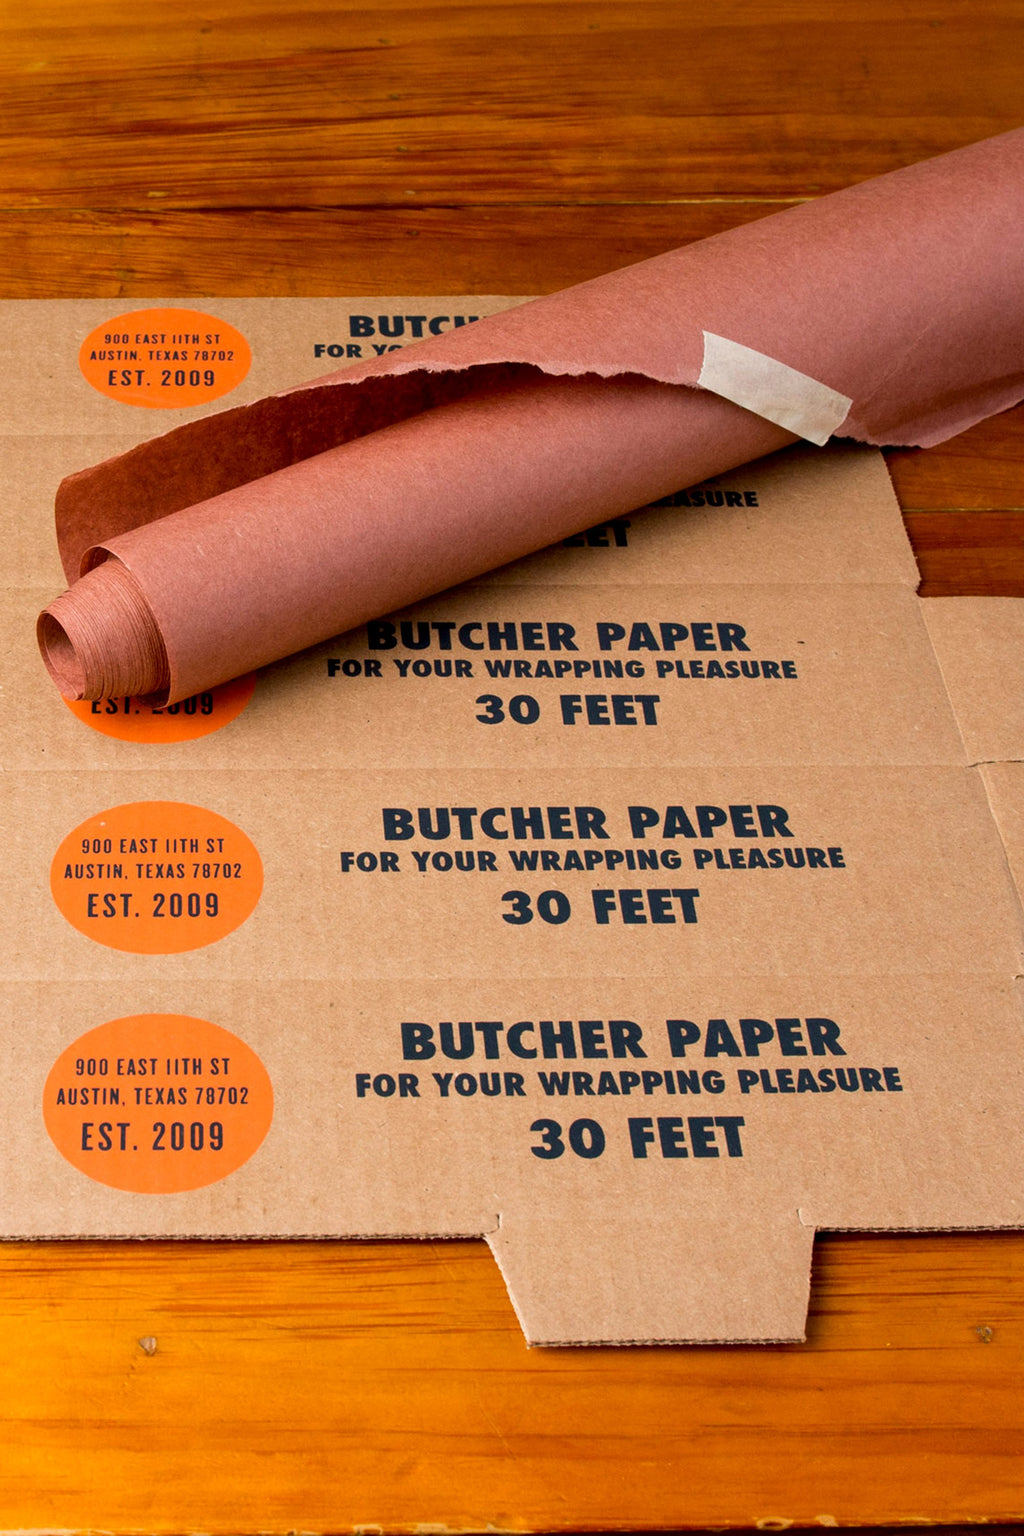 Franklin Barbecue Butcher Paper